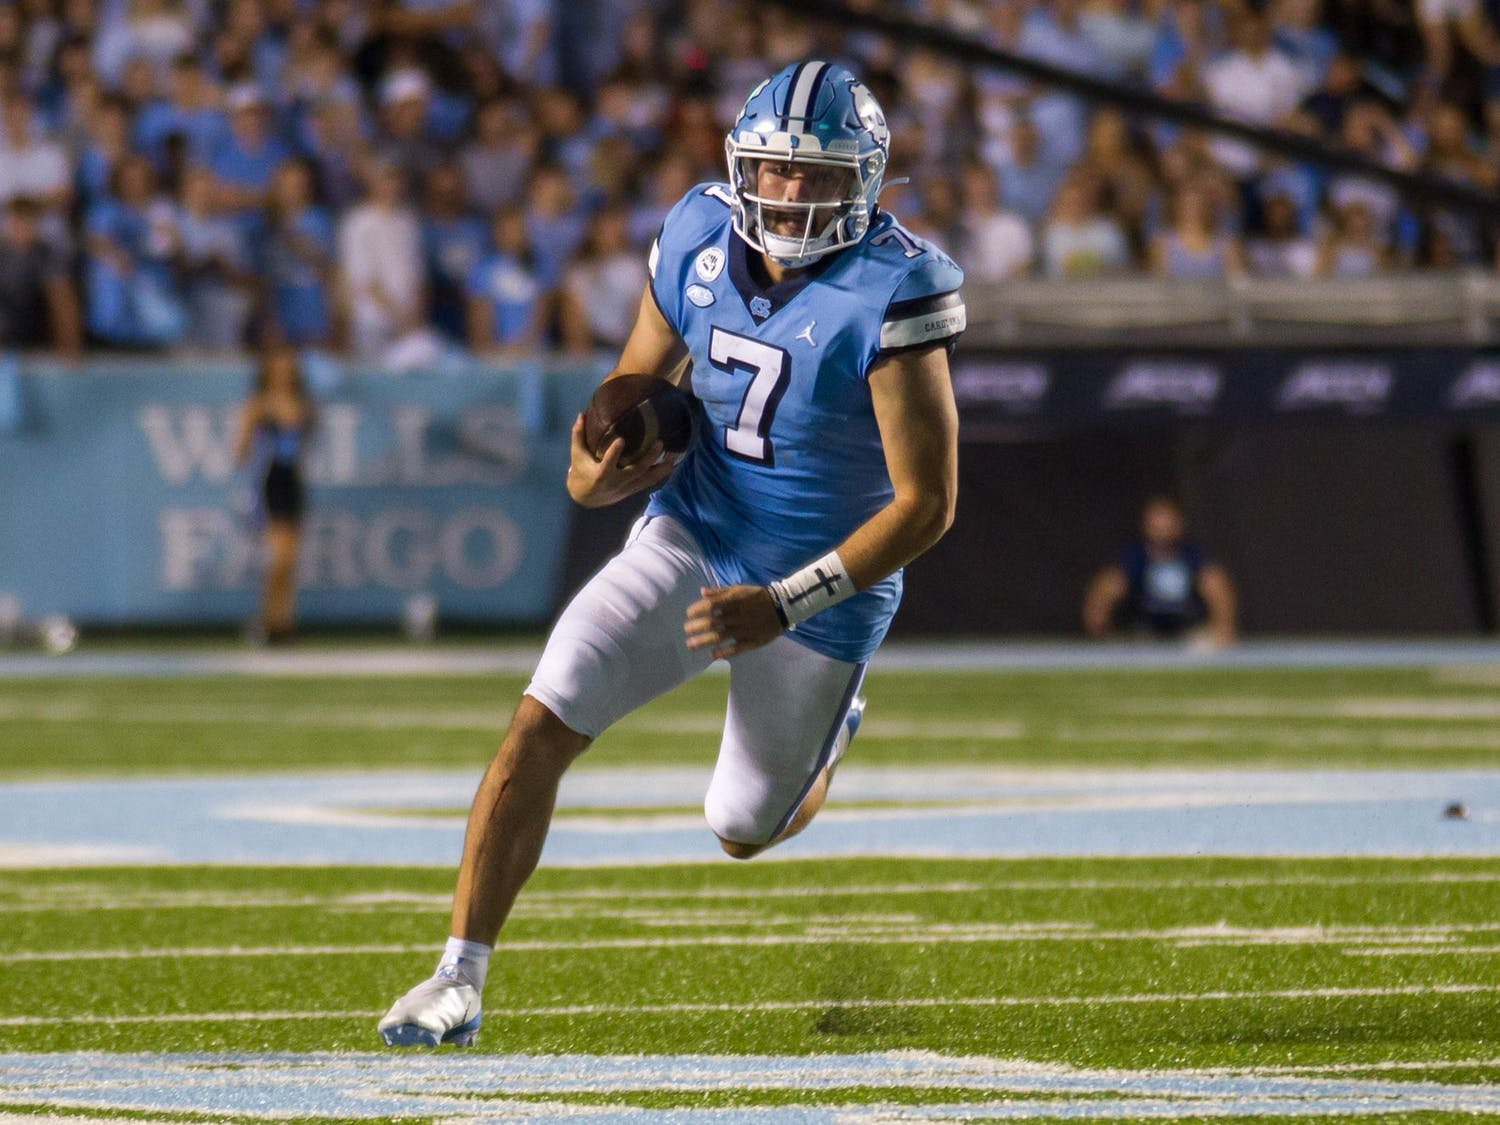 UNC junior quarterback Sam Howell (7) runs the ball down the field during the Tar Heels' home football matchup in Kenan Memorial Stadium on Sept. 18, 2021, against the University of Virginia Cavaliers. The Tar Heels won 59-39.